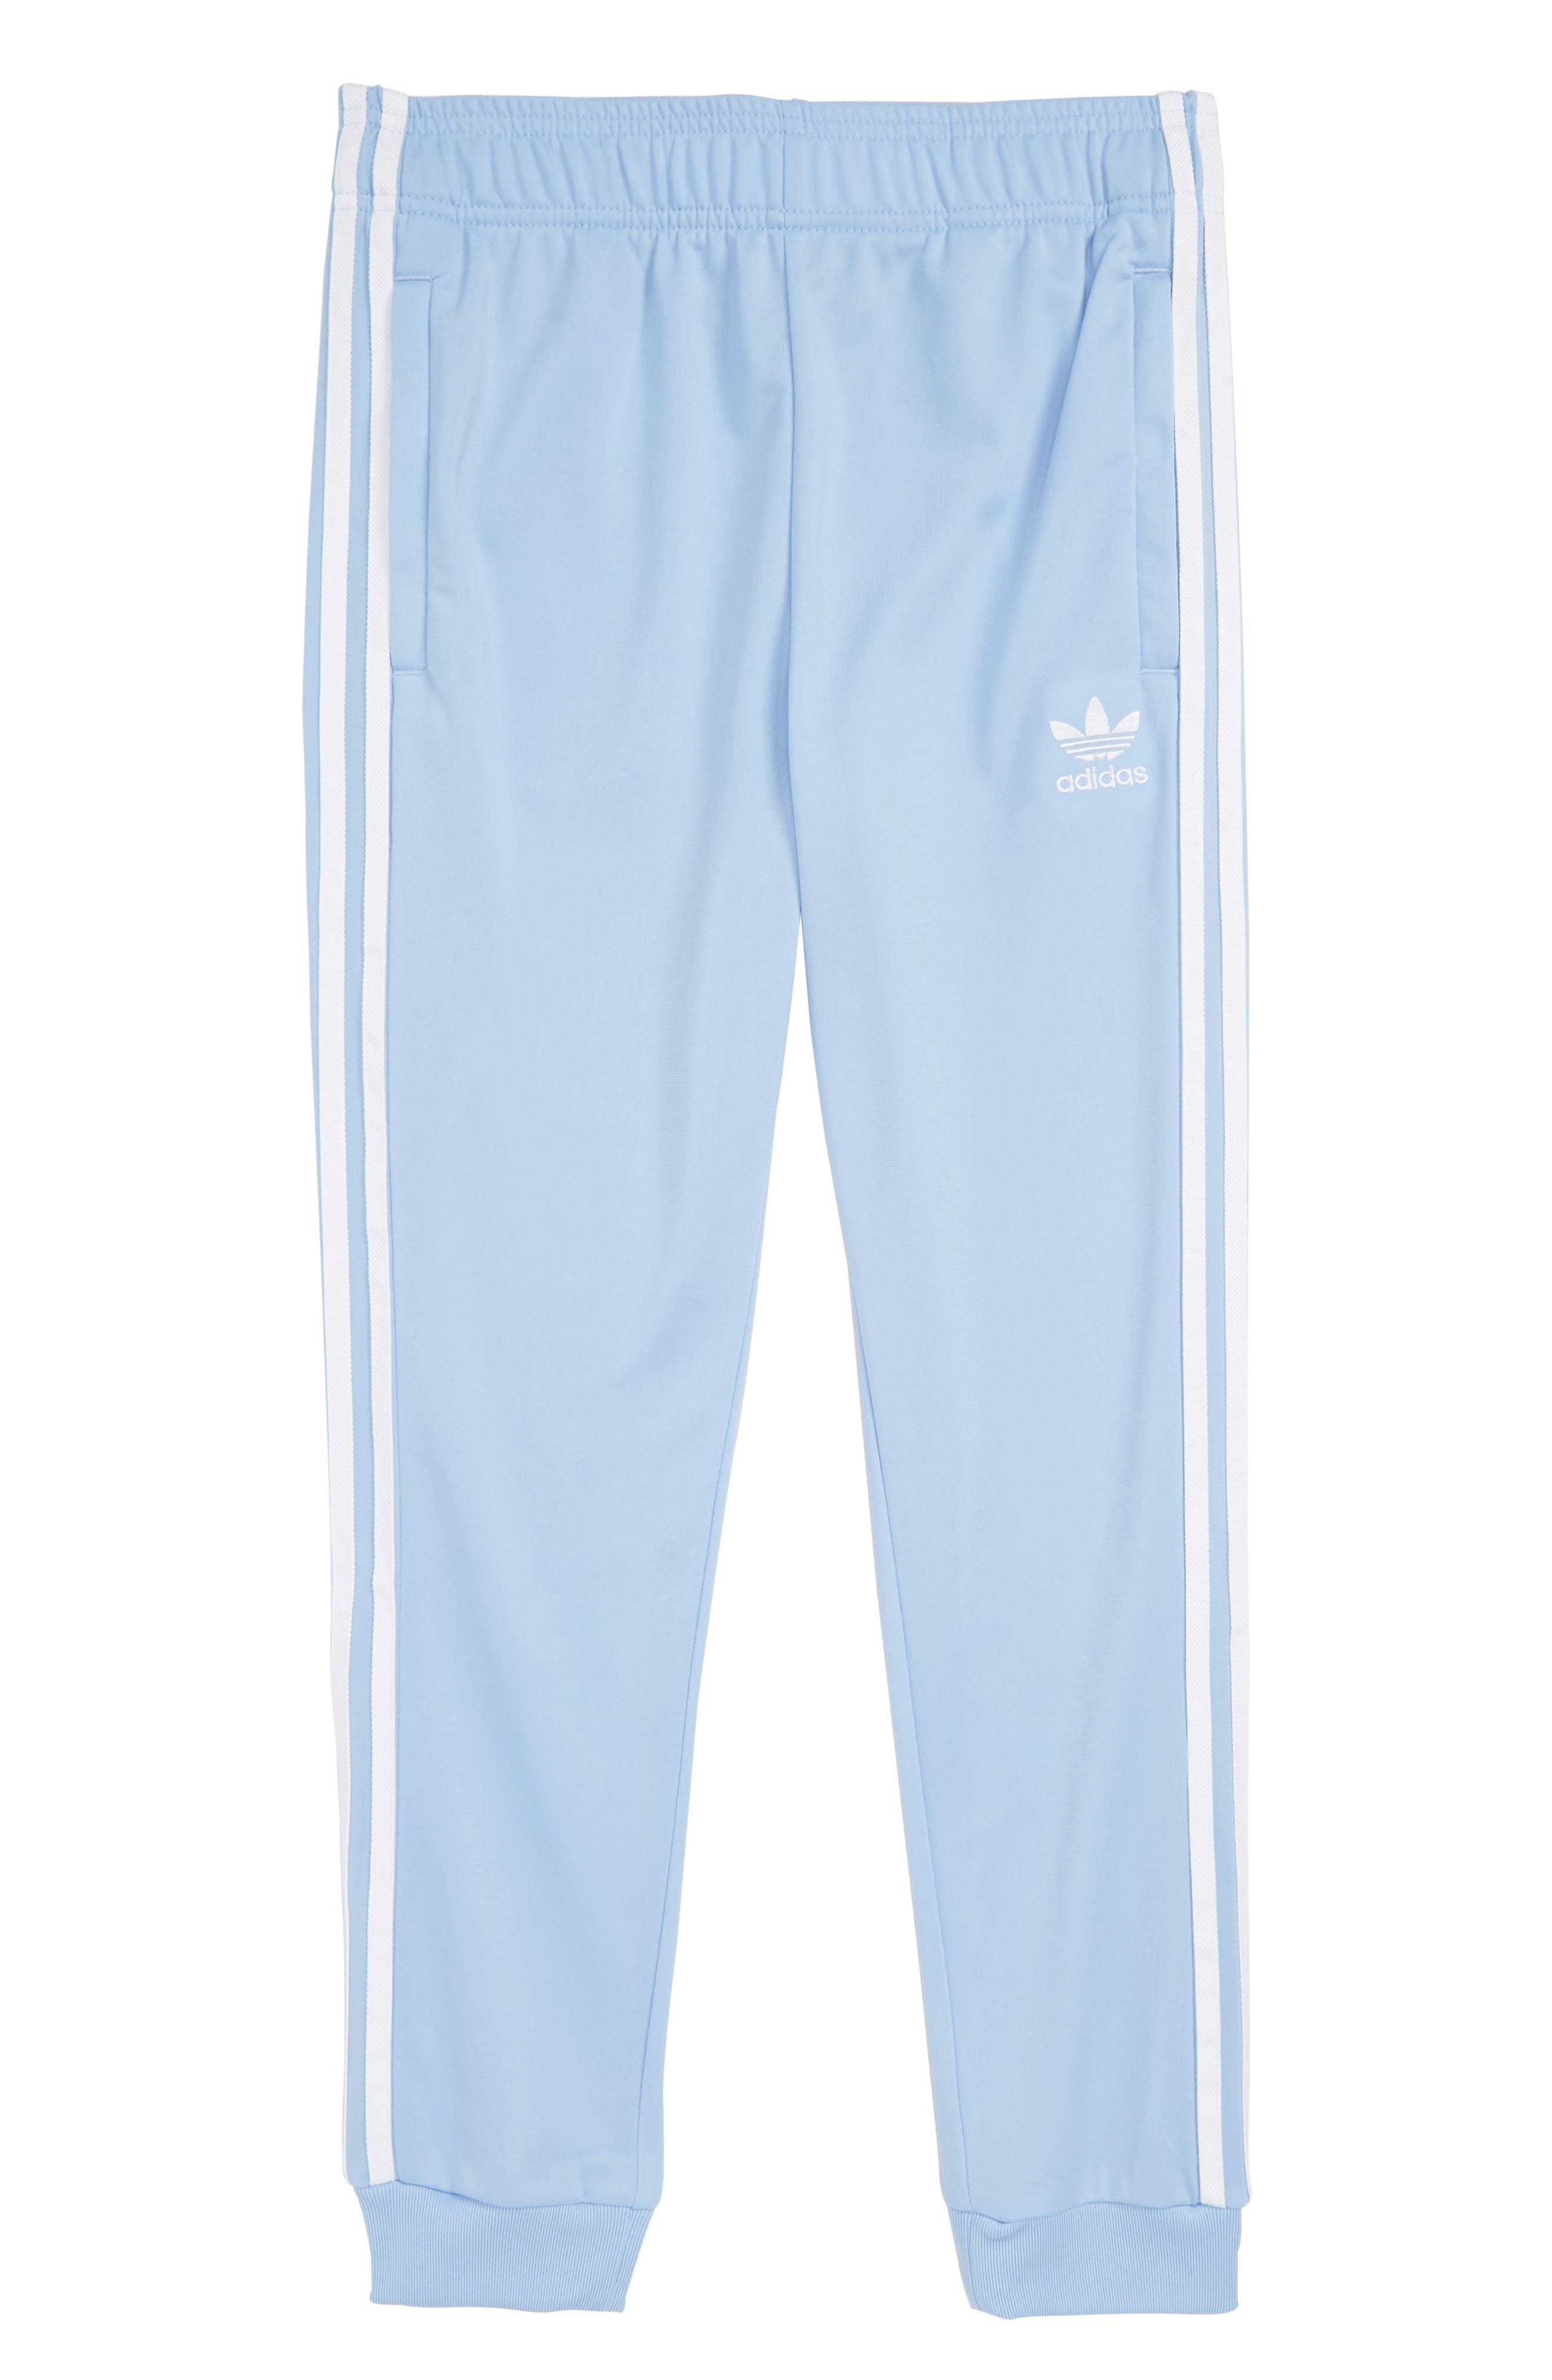 Superstar Track Pants,                             Main thumbnail 1, color,                             CLESKY/ WHITE